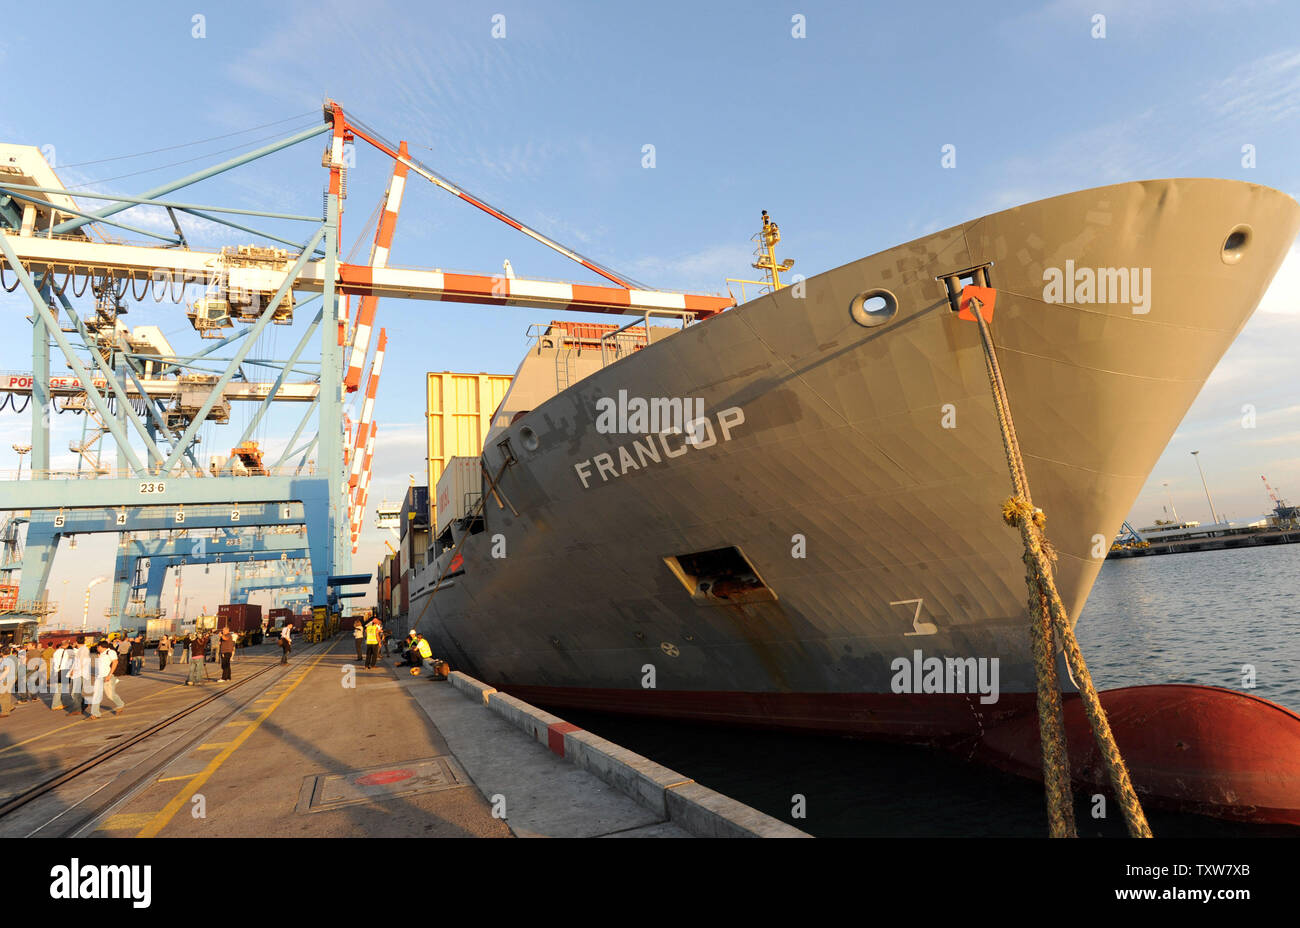 The Antiqua-flagged Francop vessel carrying Iranian supplied arms is docked at the Ashdod Port on November 4, 2009. The ship was seized by Israeli commandos in the Mediterranean Sea carrying hundreds of tons of Iranian supplied arms bound for Syria. UPI/Debbie Hill Stock Photo